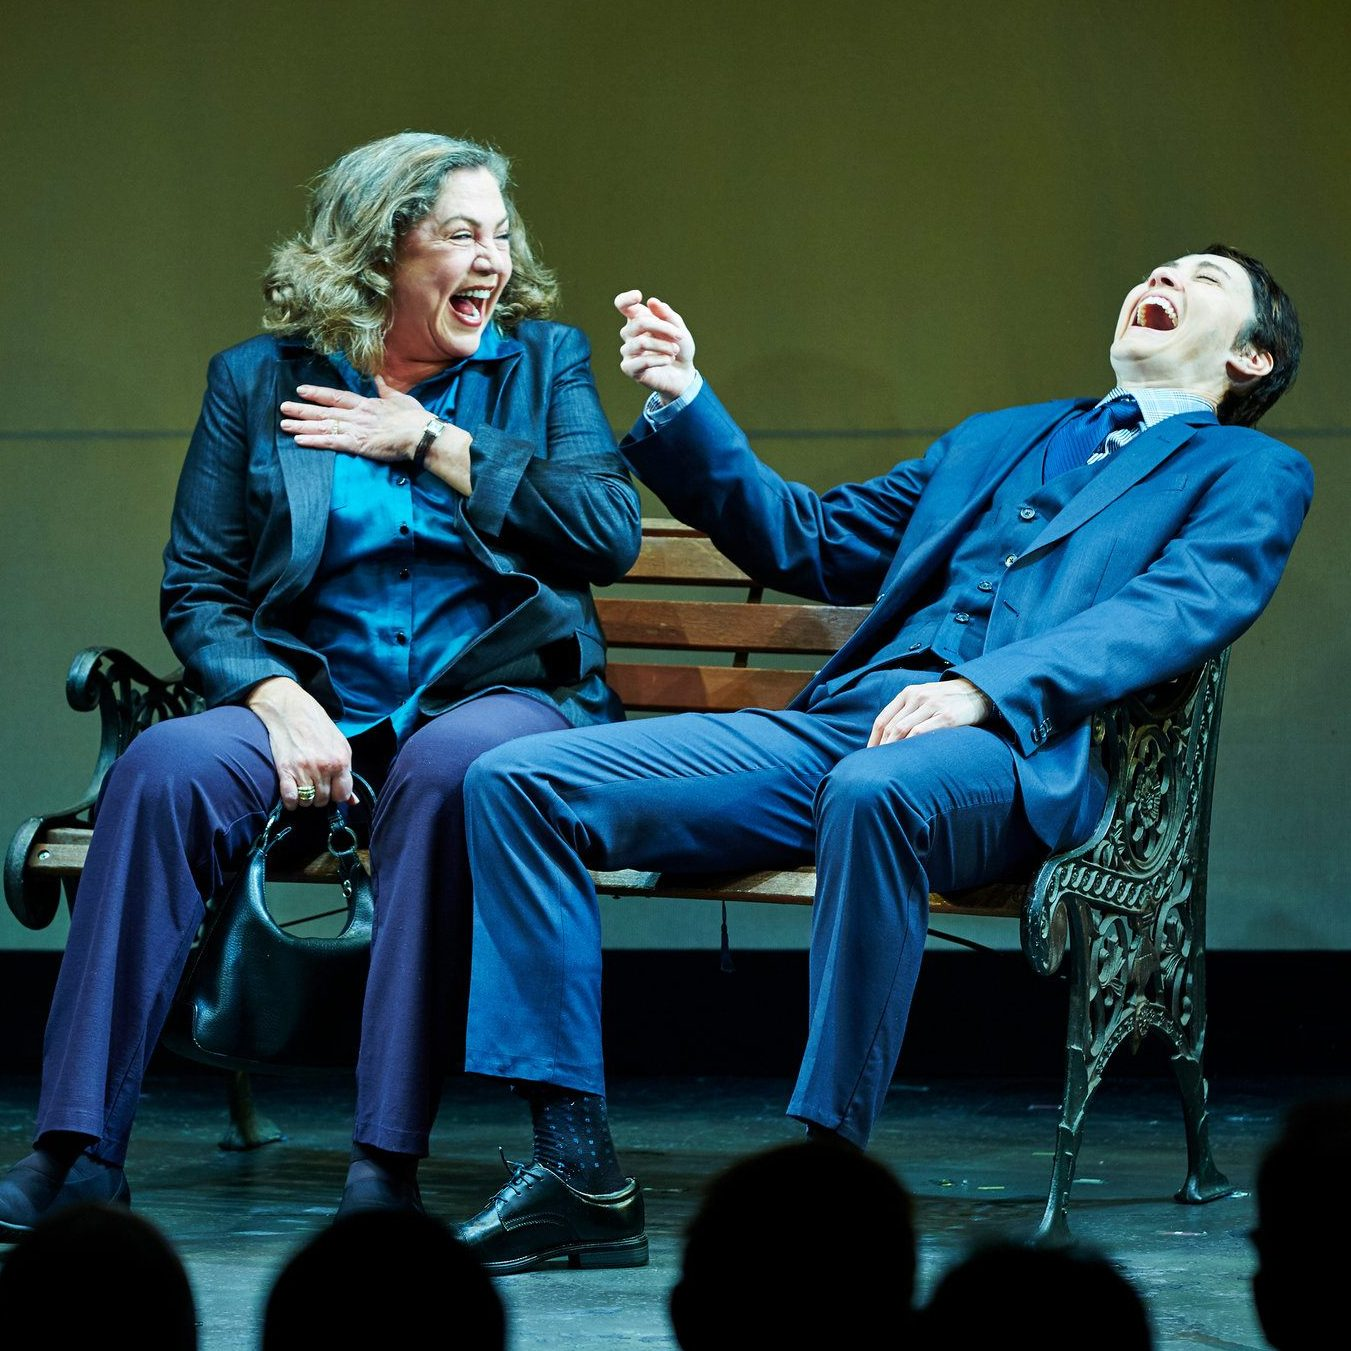 13WOULDYOU superJumbo e1602080801182 20 Things You Probably Didn't Know About Kathleen Turner